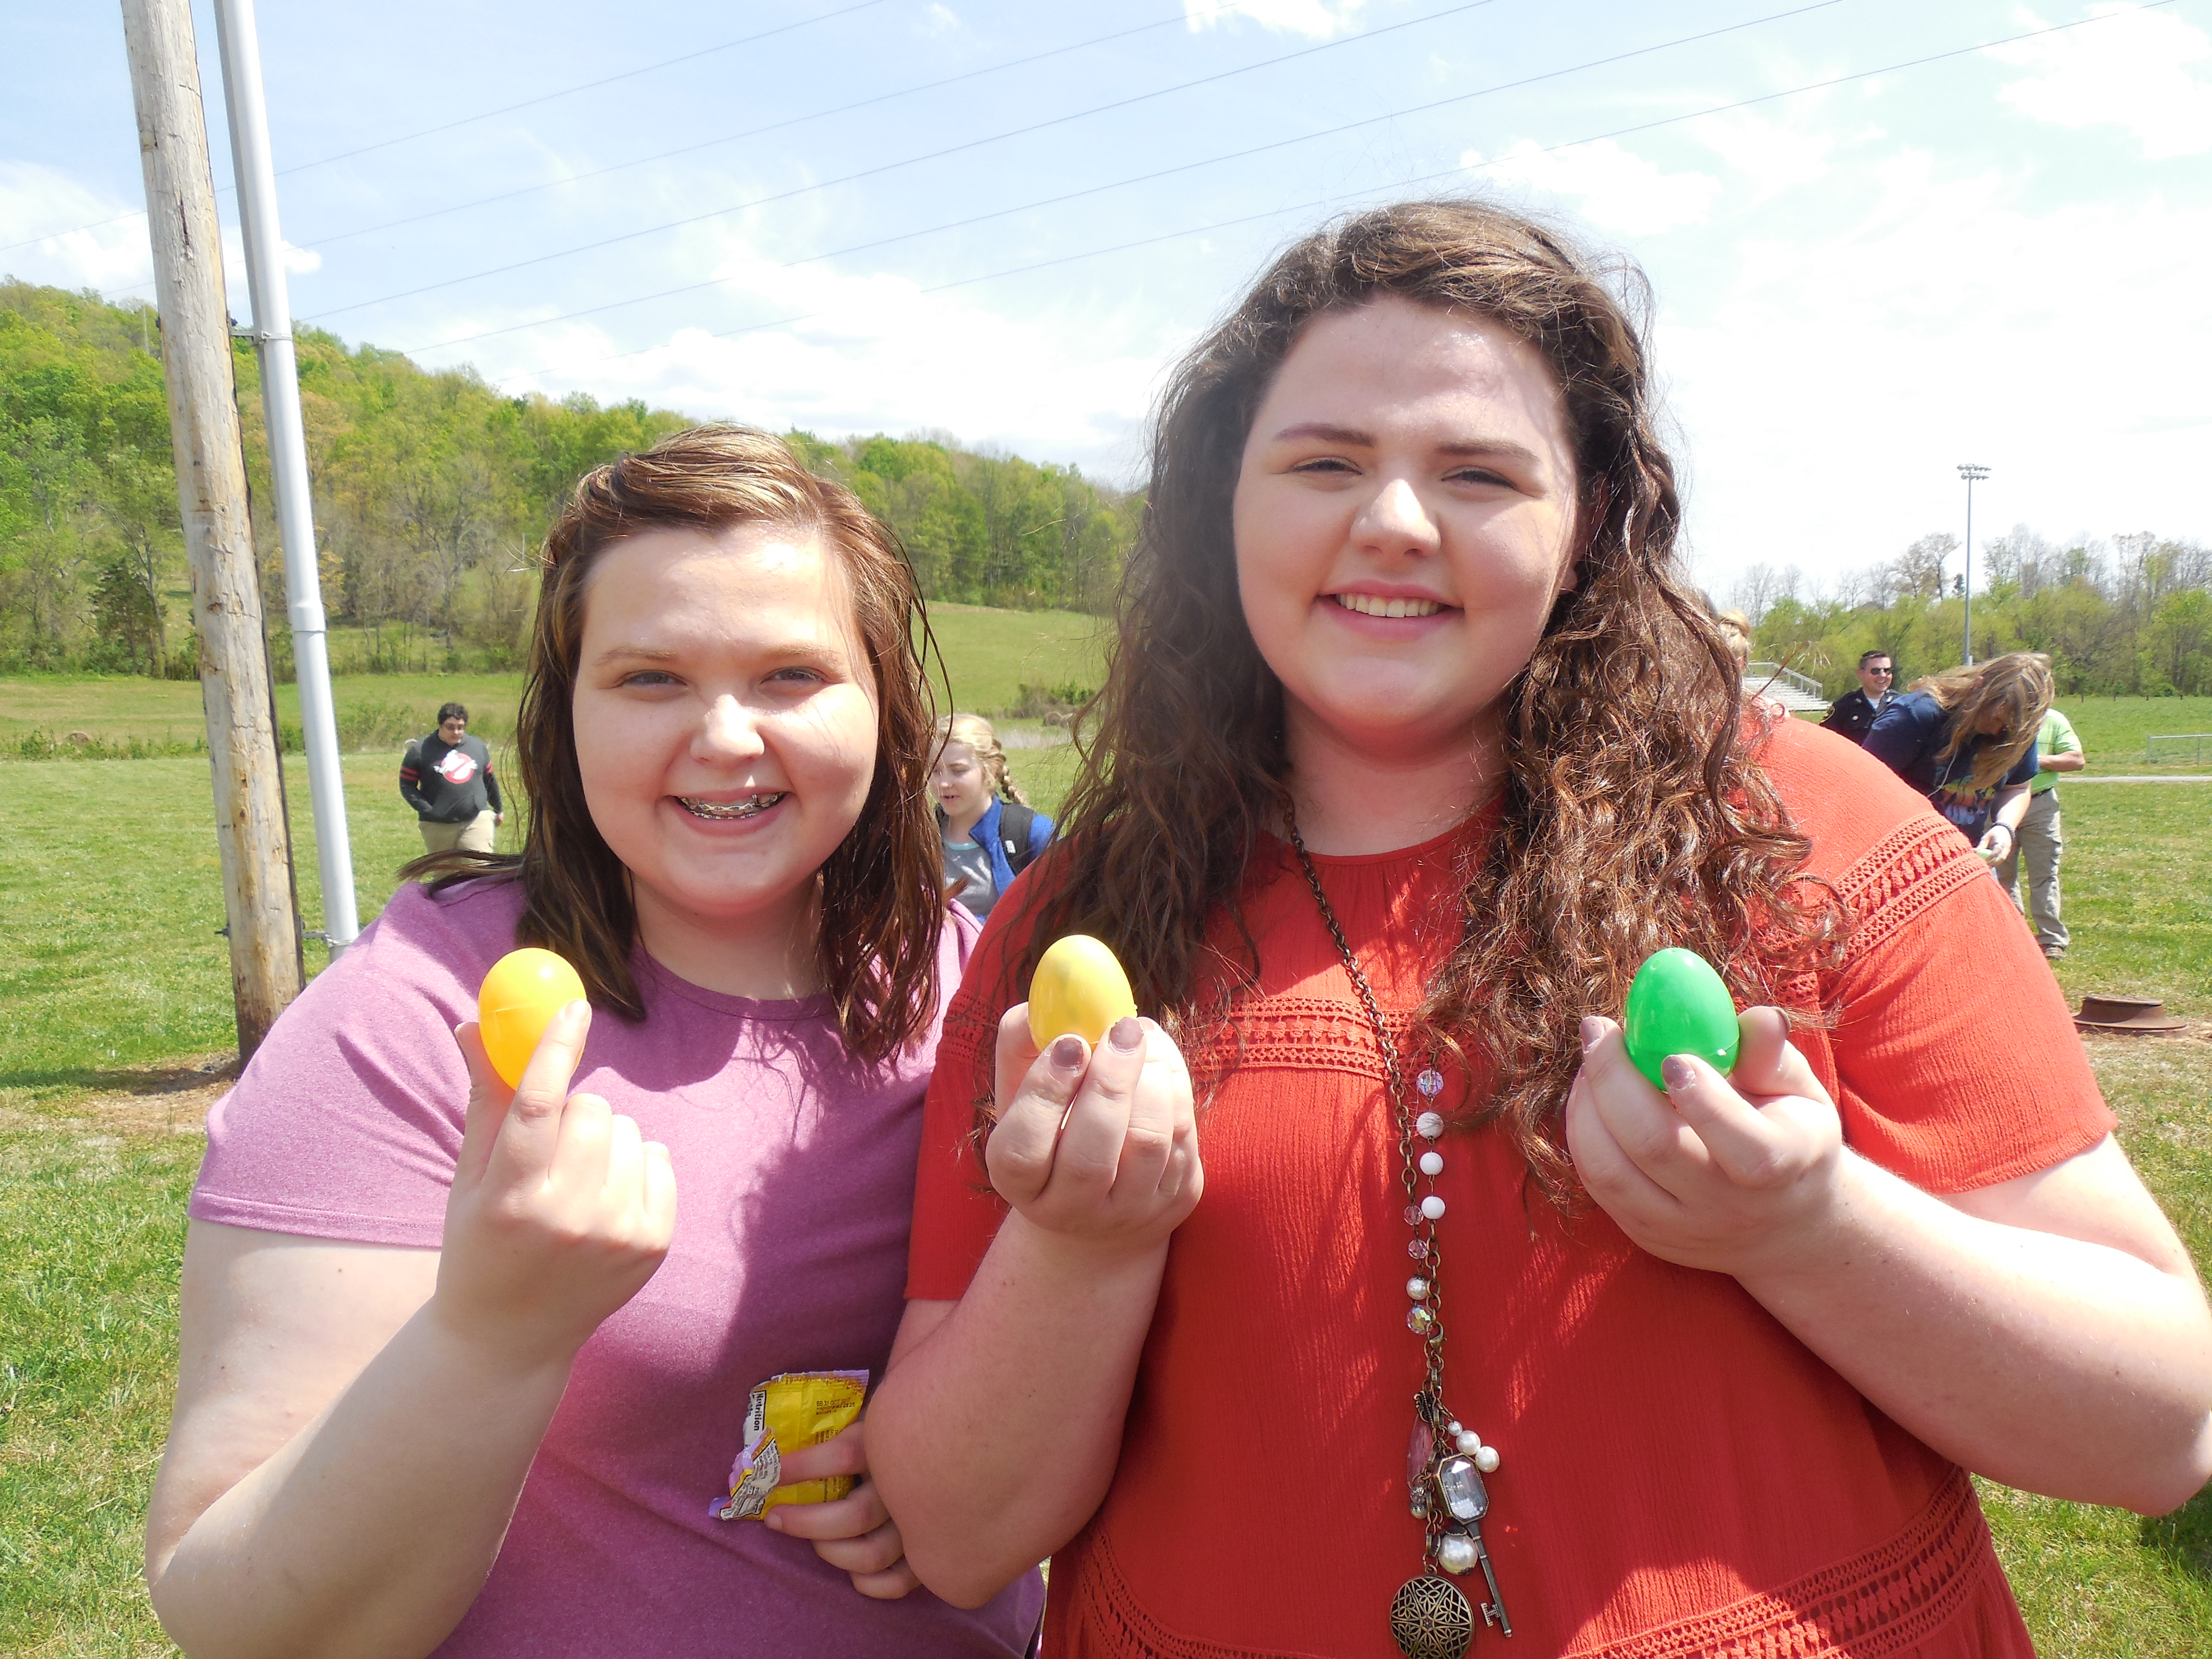 Clinton County High School students who are College and Career Ready were rewarded with ice cream sundae buffet and Easter egg hunt on Friday, April 14th.